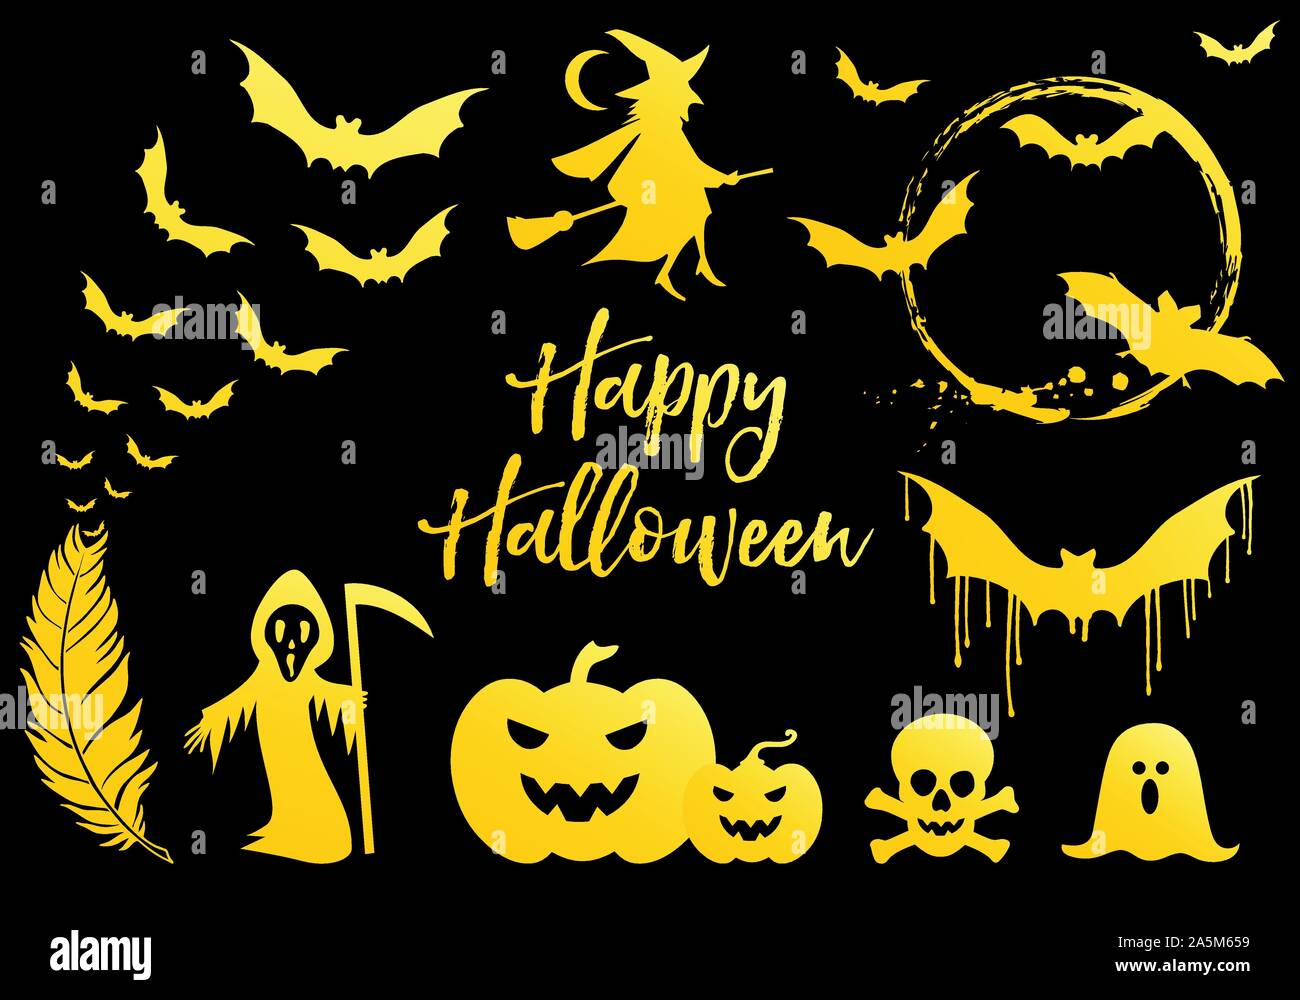 Halloween set with golden bats, flying witch, gold pumpkins, moon, ghost, vector design elements Stock Vector